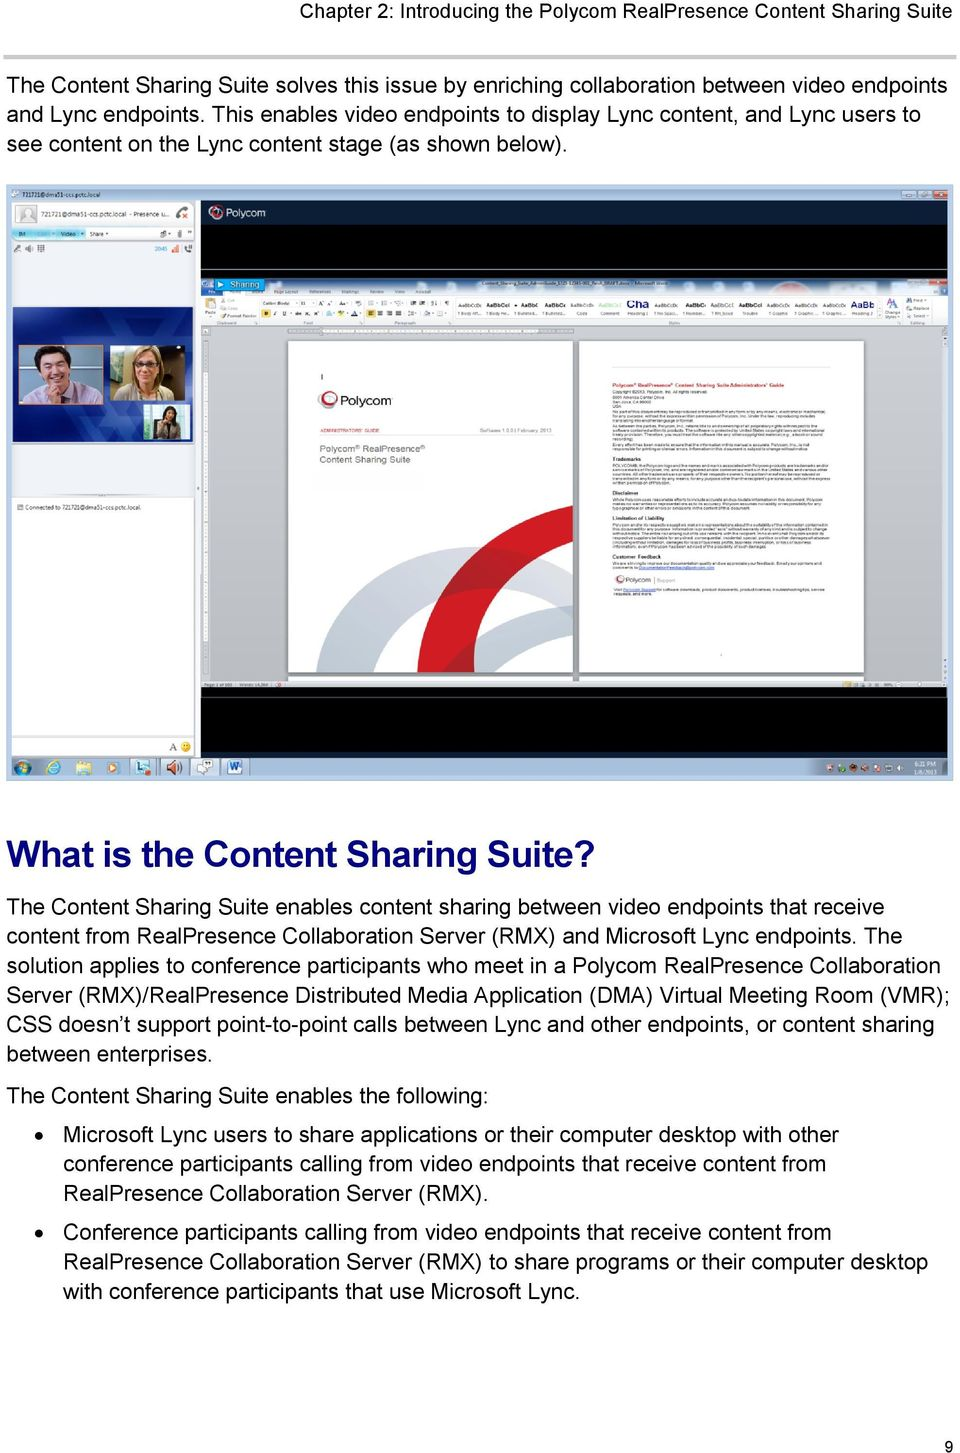 The Content Sharing Suite enables content sharing between video endpoints that receive content from RealPresence Collaboration Server (RMX) and Microsoft Lync endpoints.